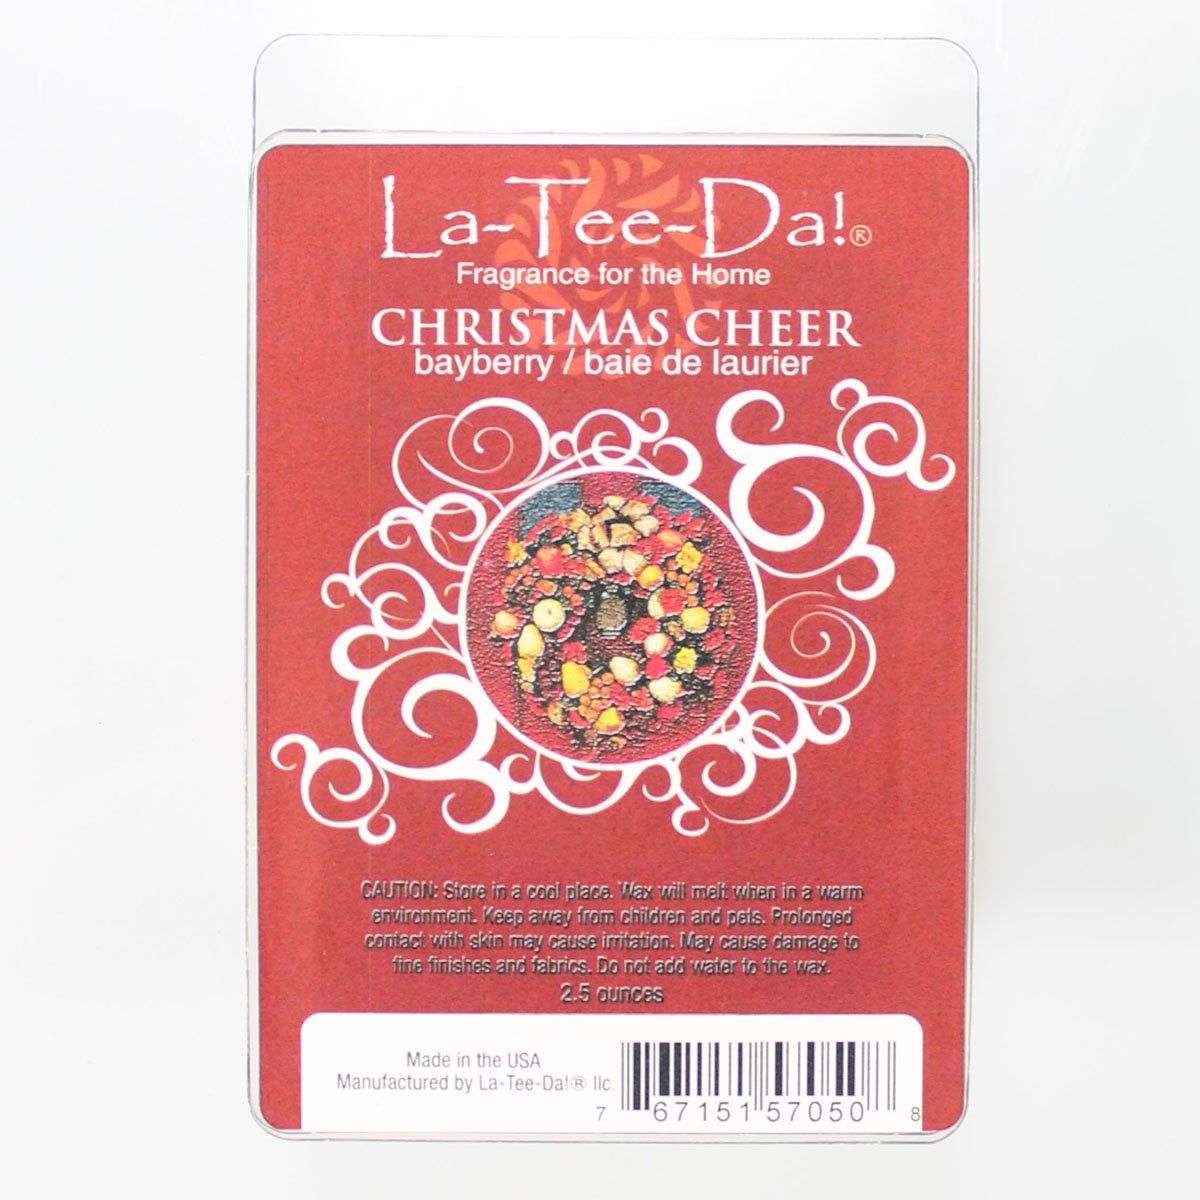 La-Tee-Da Wax Melts Christmas Cheer